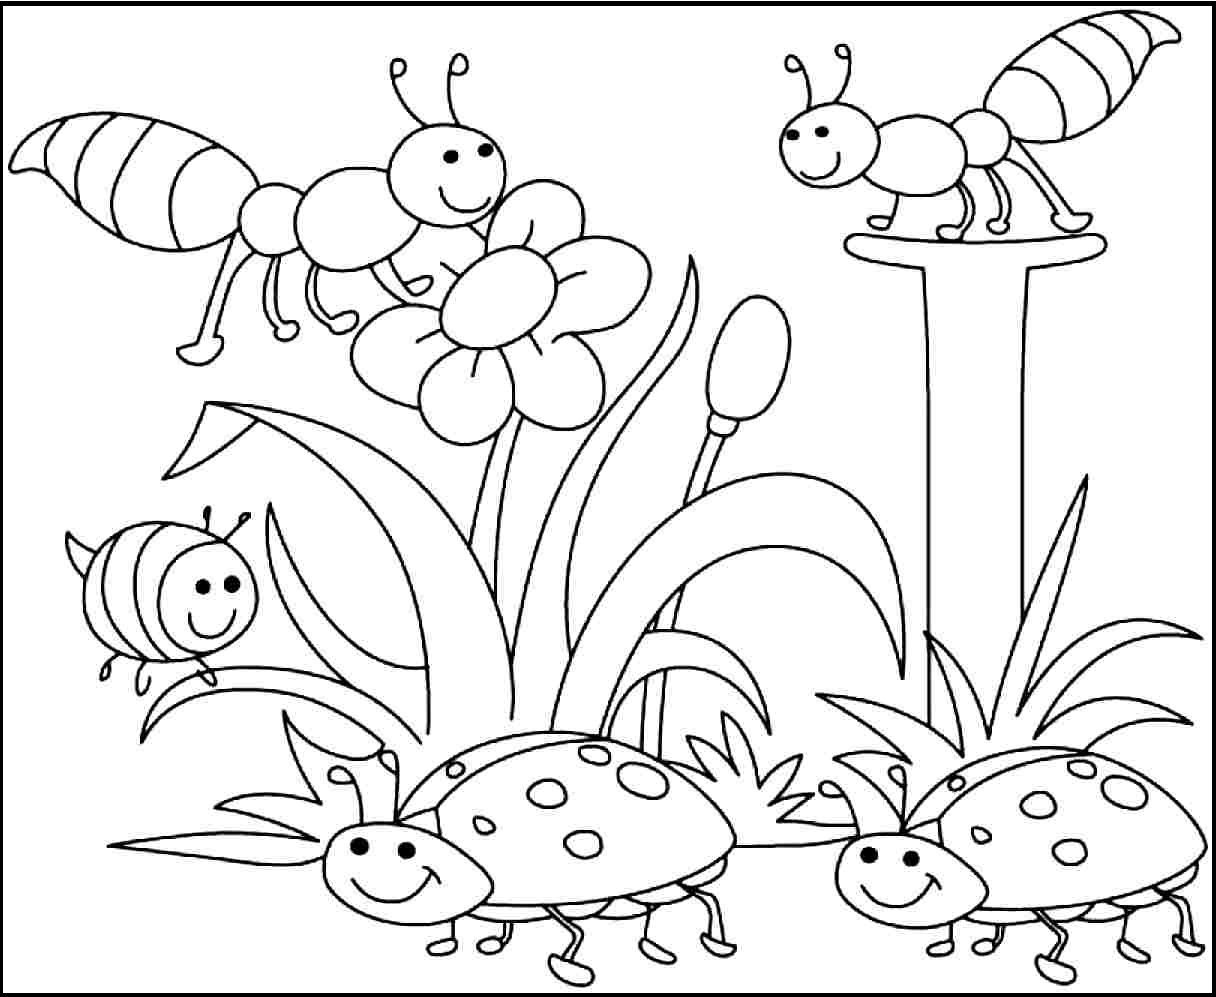 Insects Pleased With Spring Day Coloring Pages For Kids #d7S ...